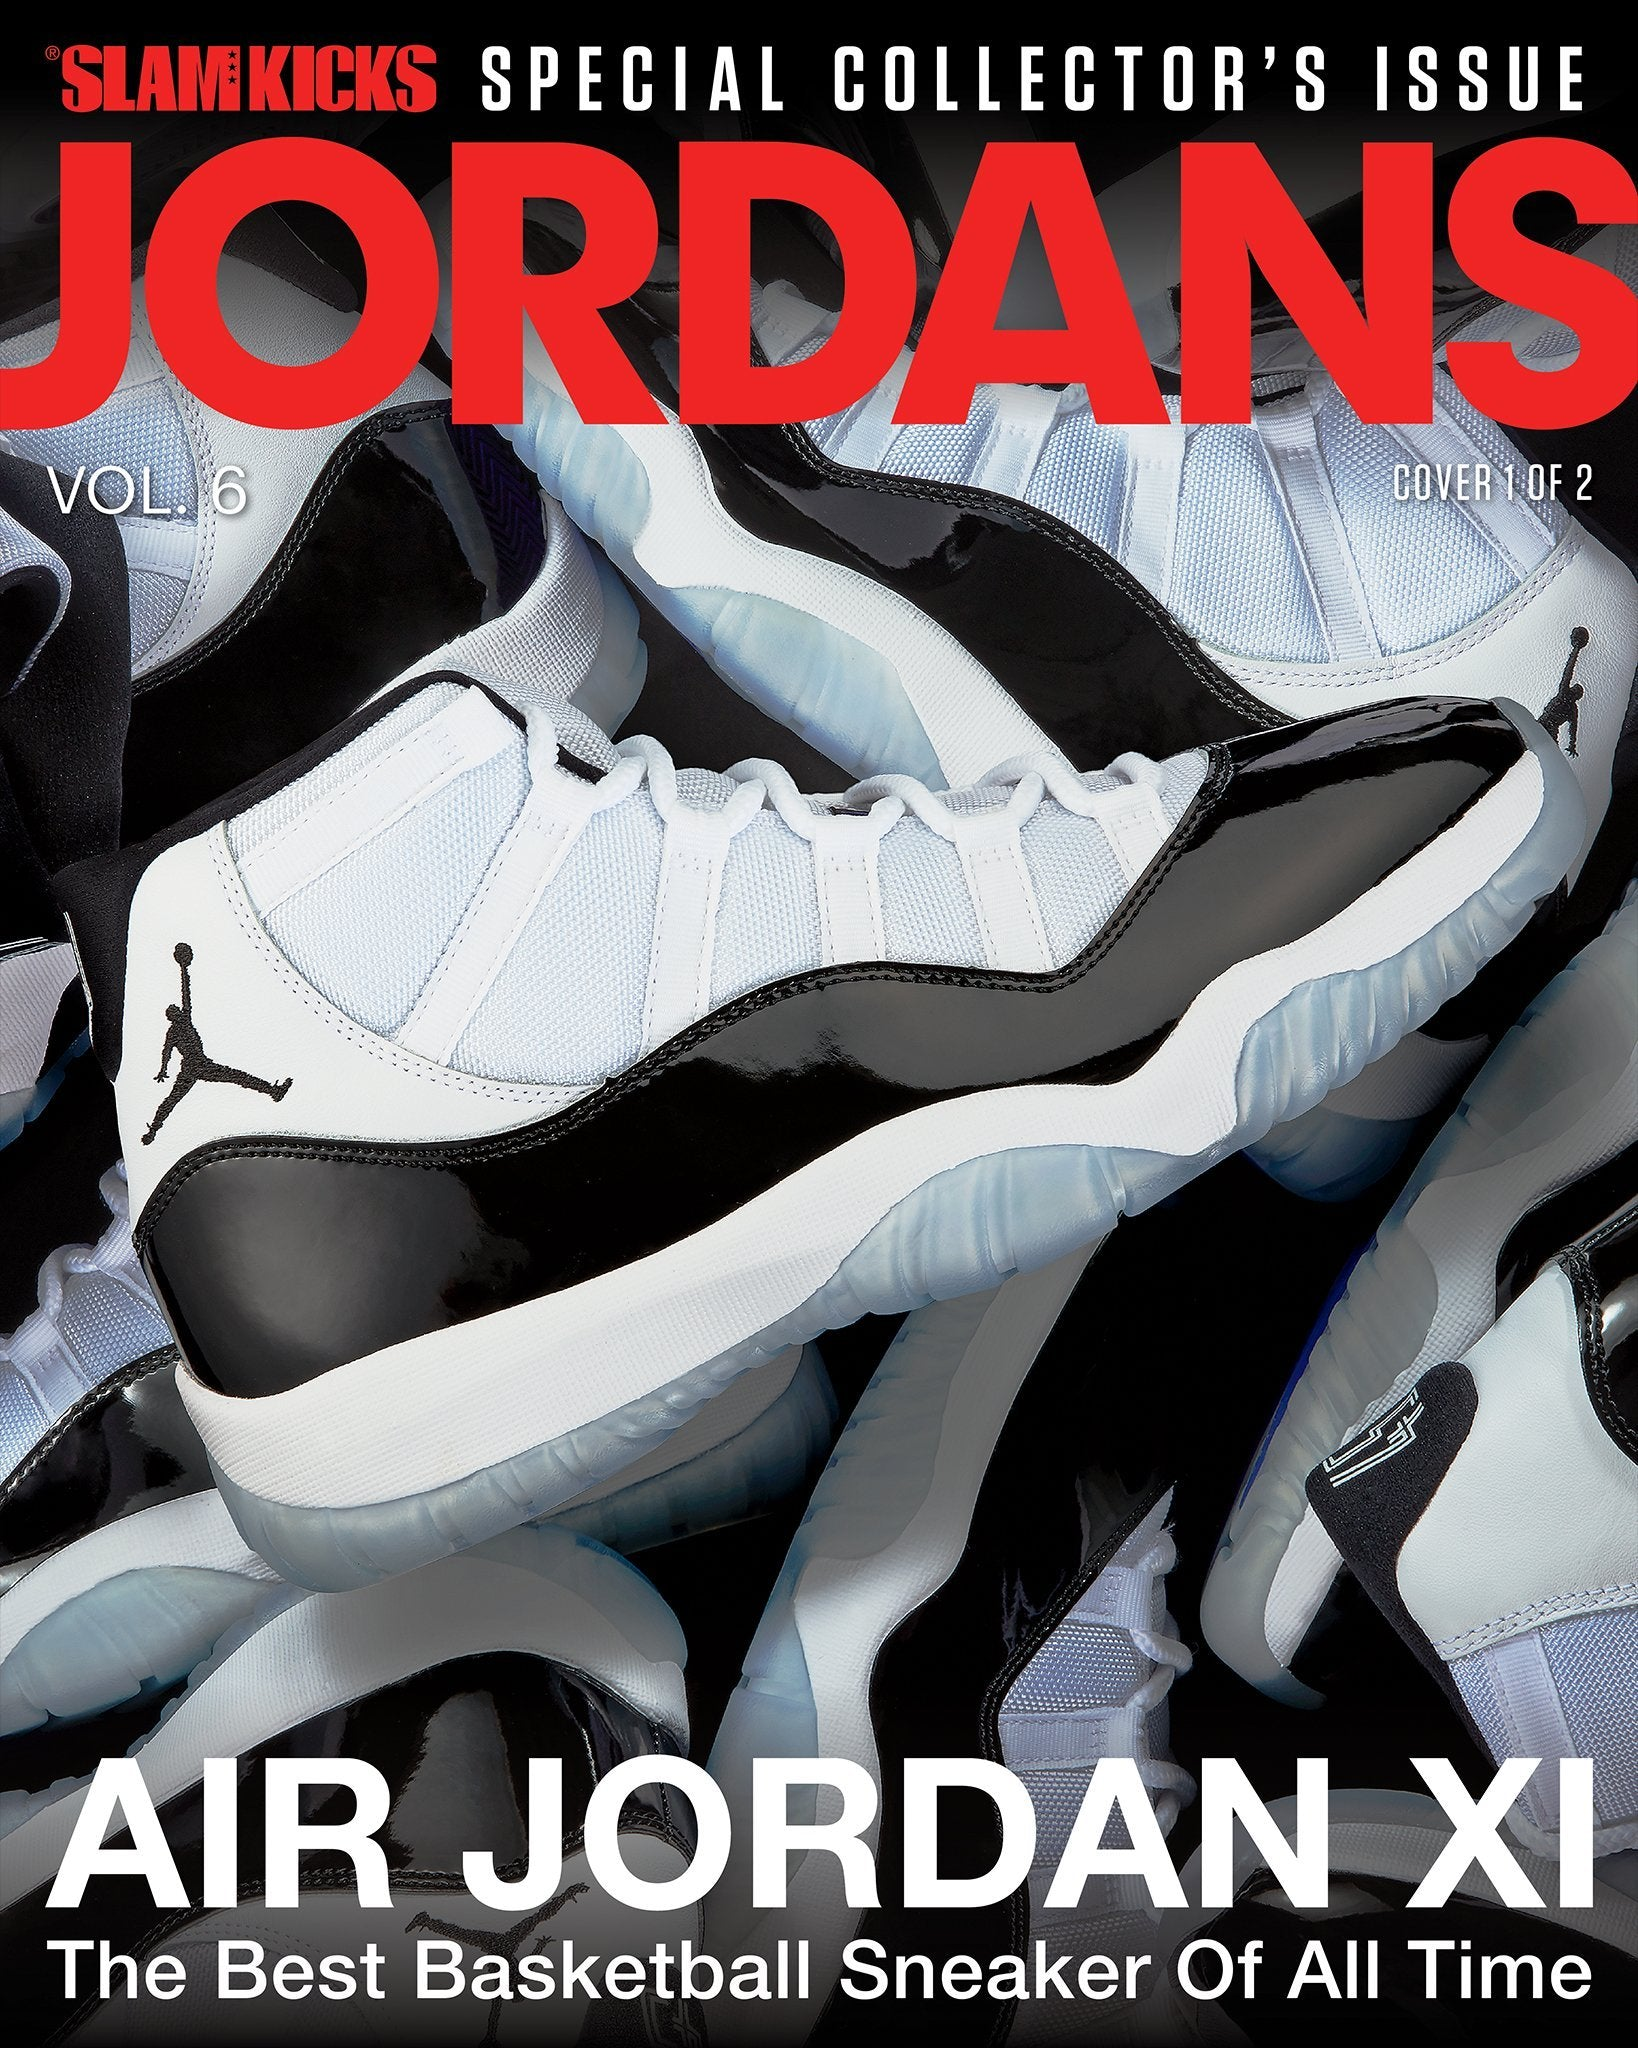 SLAM Kicks: Jordans Vol. 6 (Concords) - SLAM